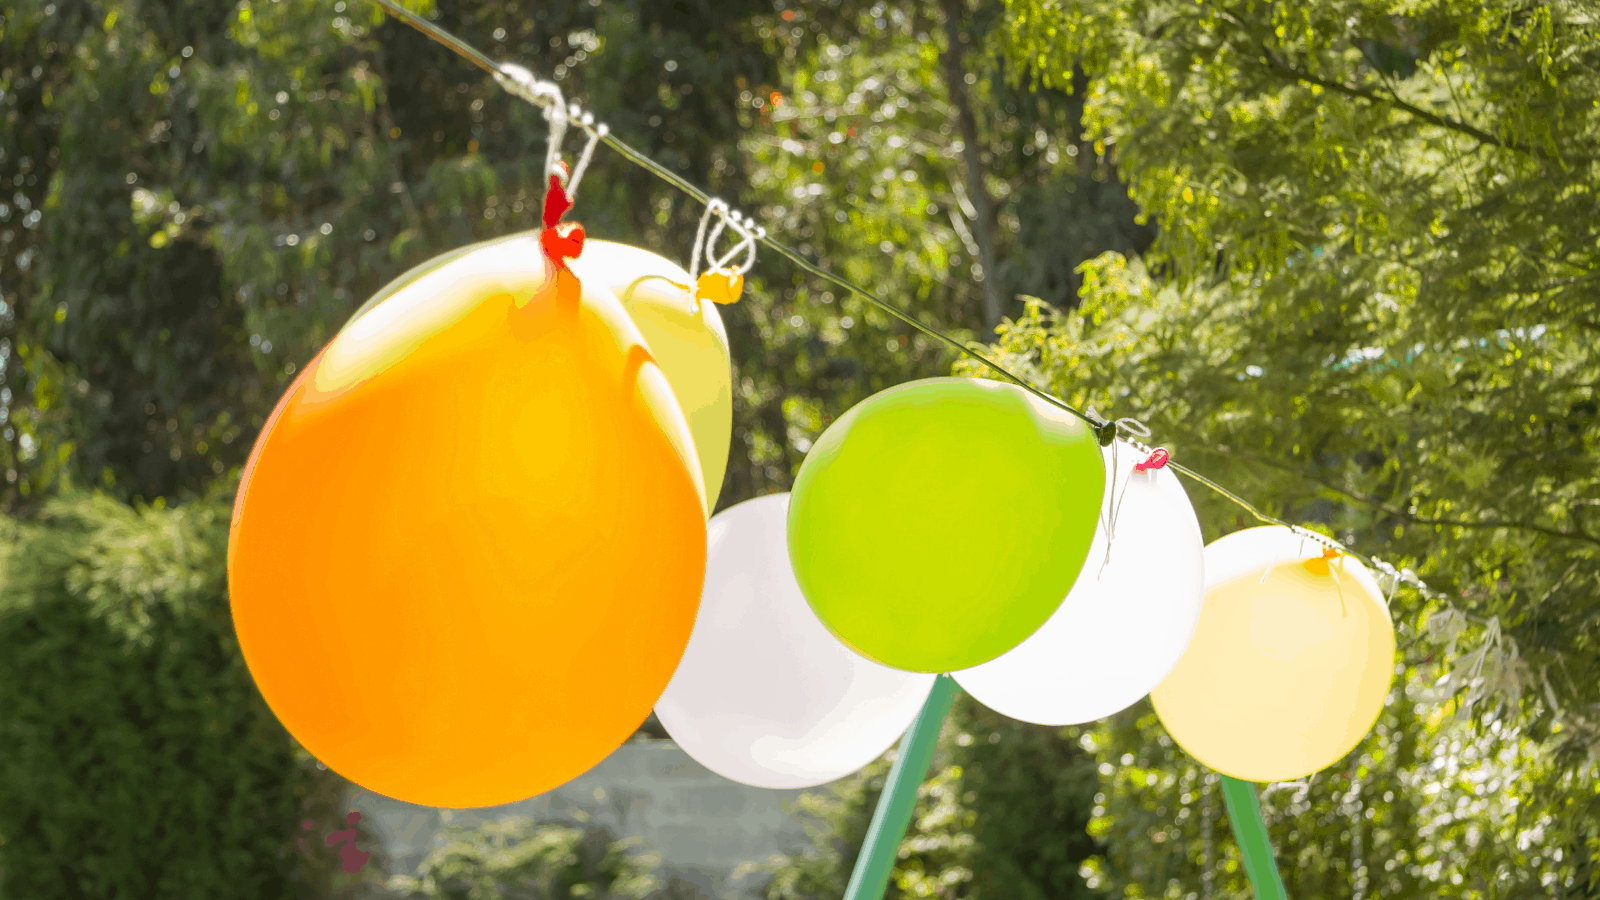 Balloon Party Games For Teens